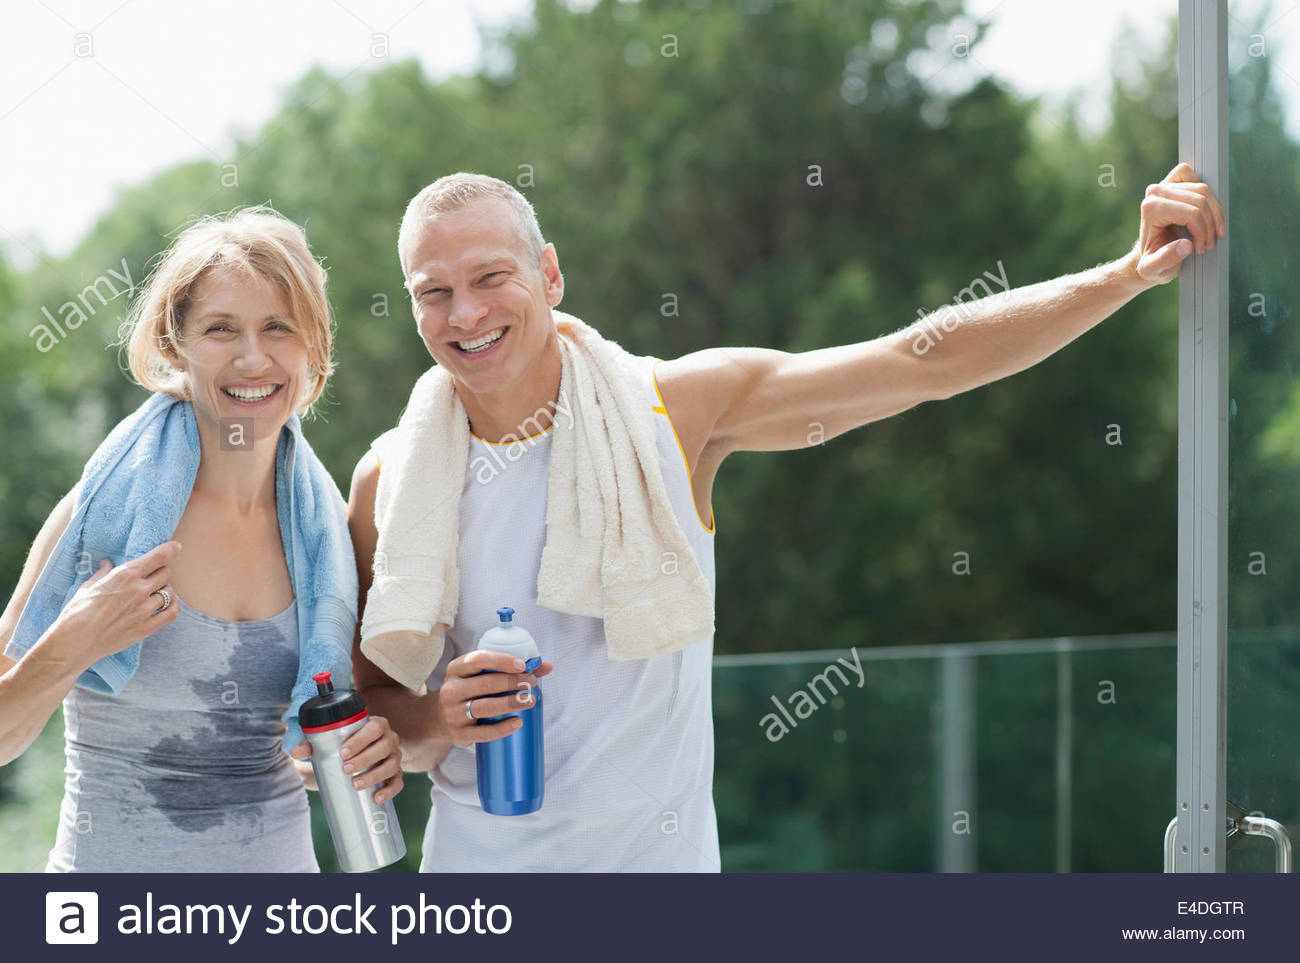 Smiling couple drinking water after exercise - Stock Image